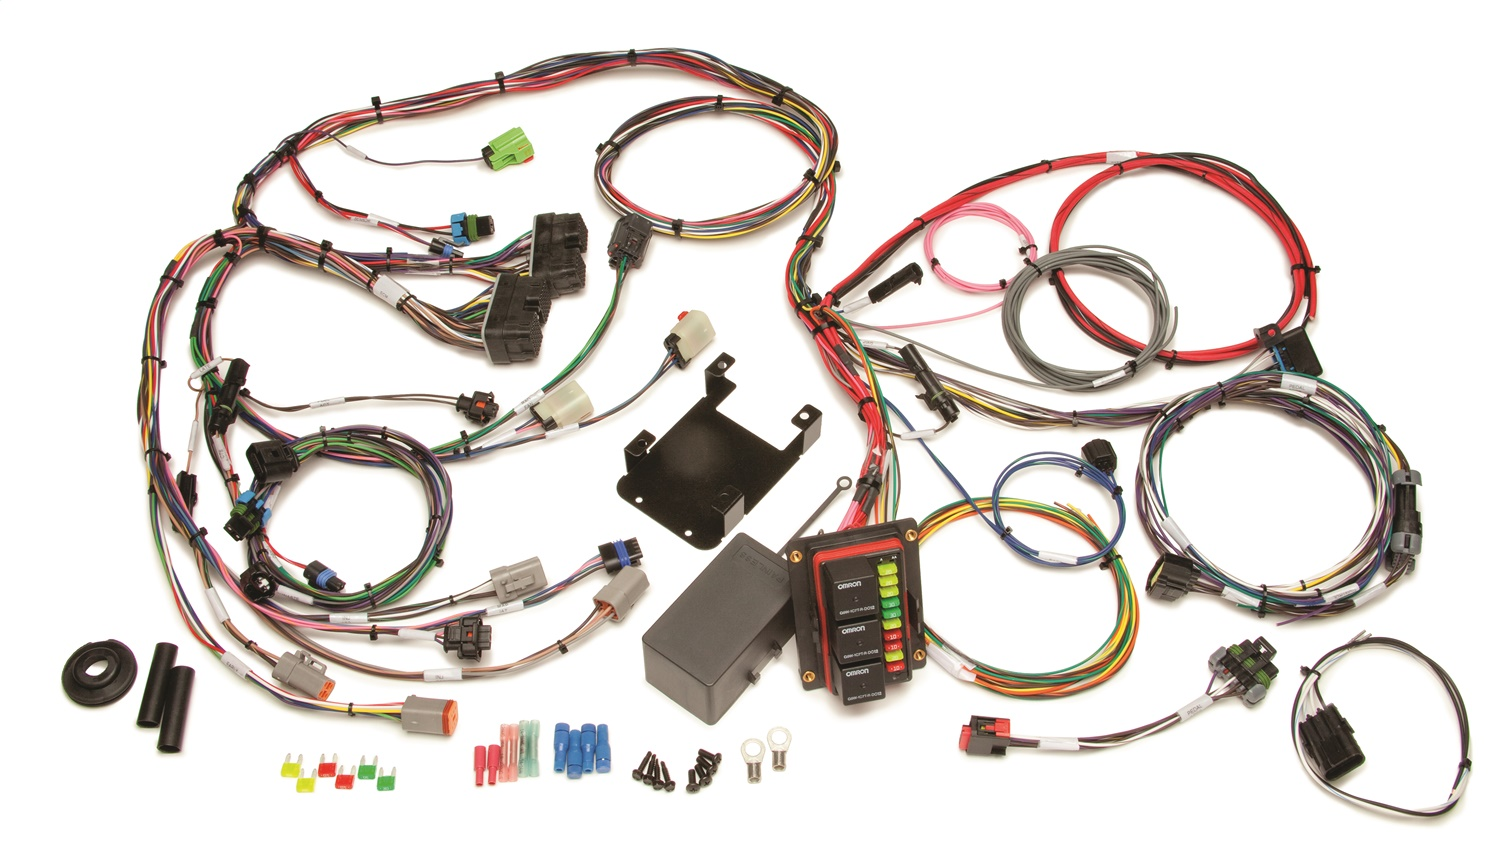 painless wiring 60250 cummins diesel engine harness fits. Black Bedroom Furniture Sets. Home Design Ideas